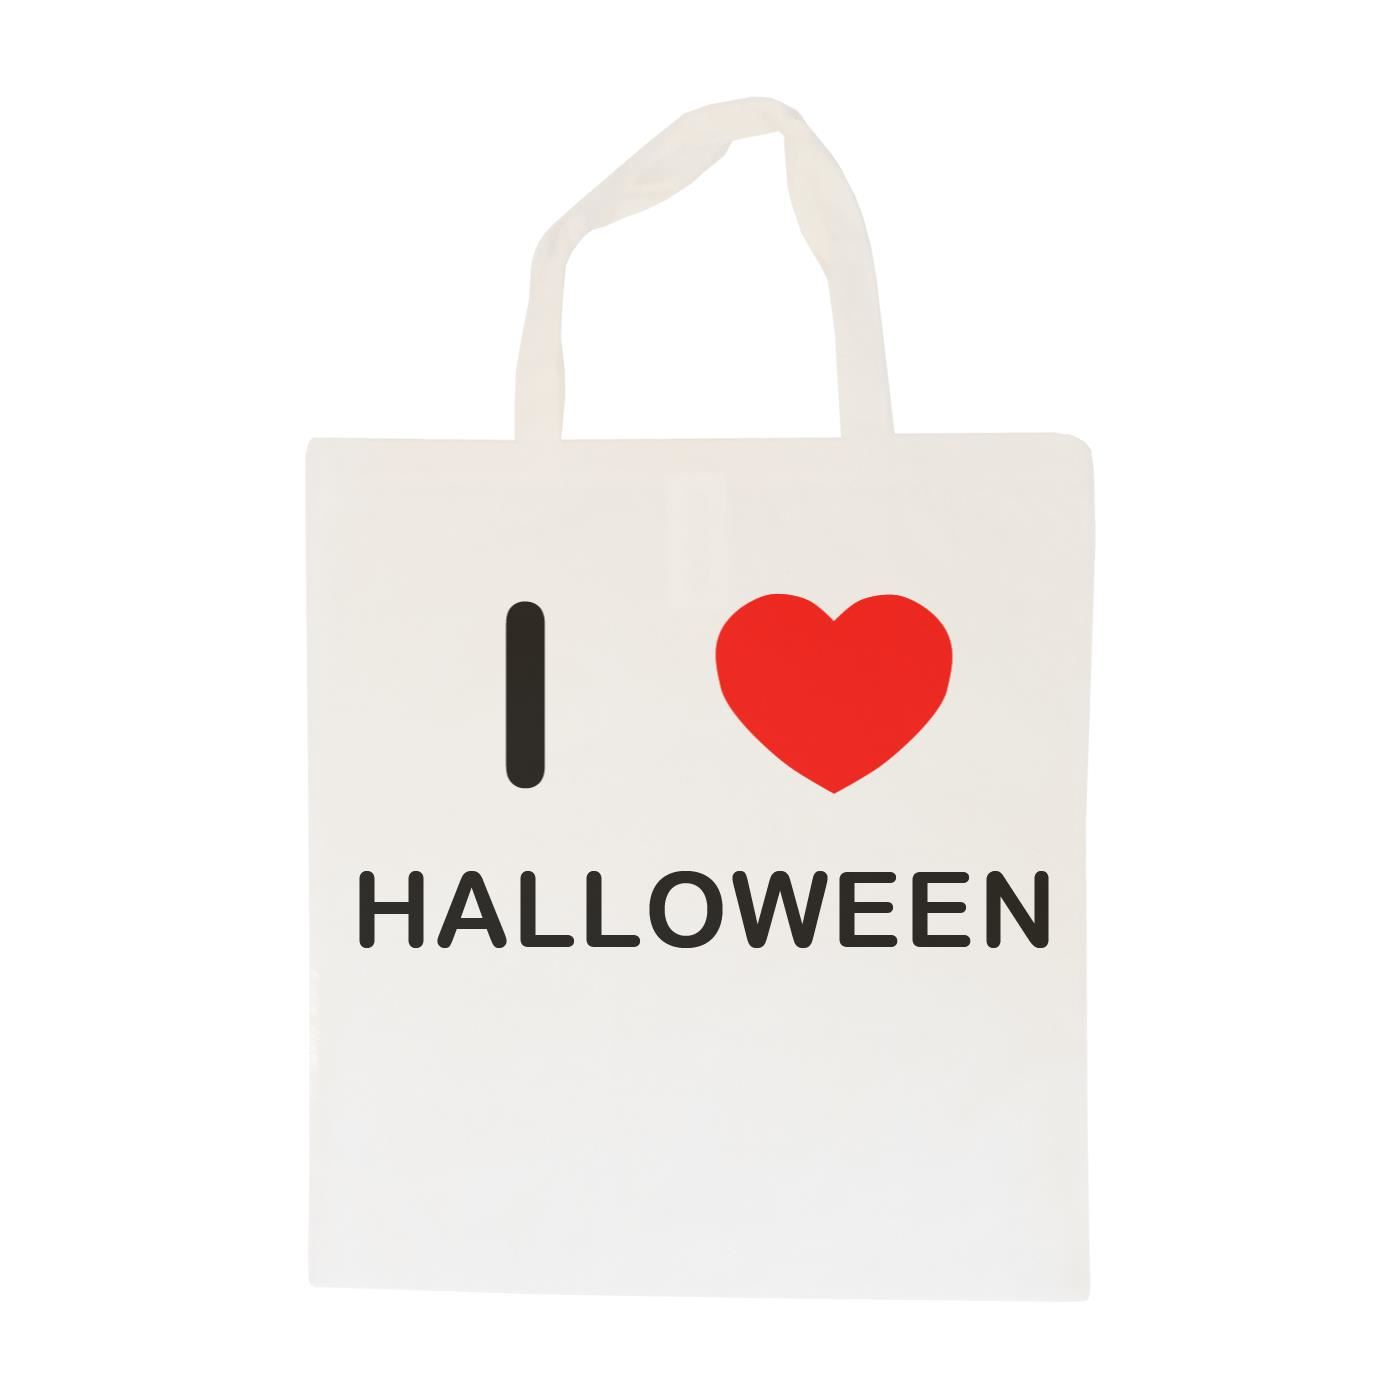 I Love Halloween - Cotton Bag | Size choice Tote, Shopper or Sling